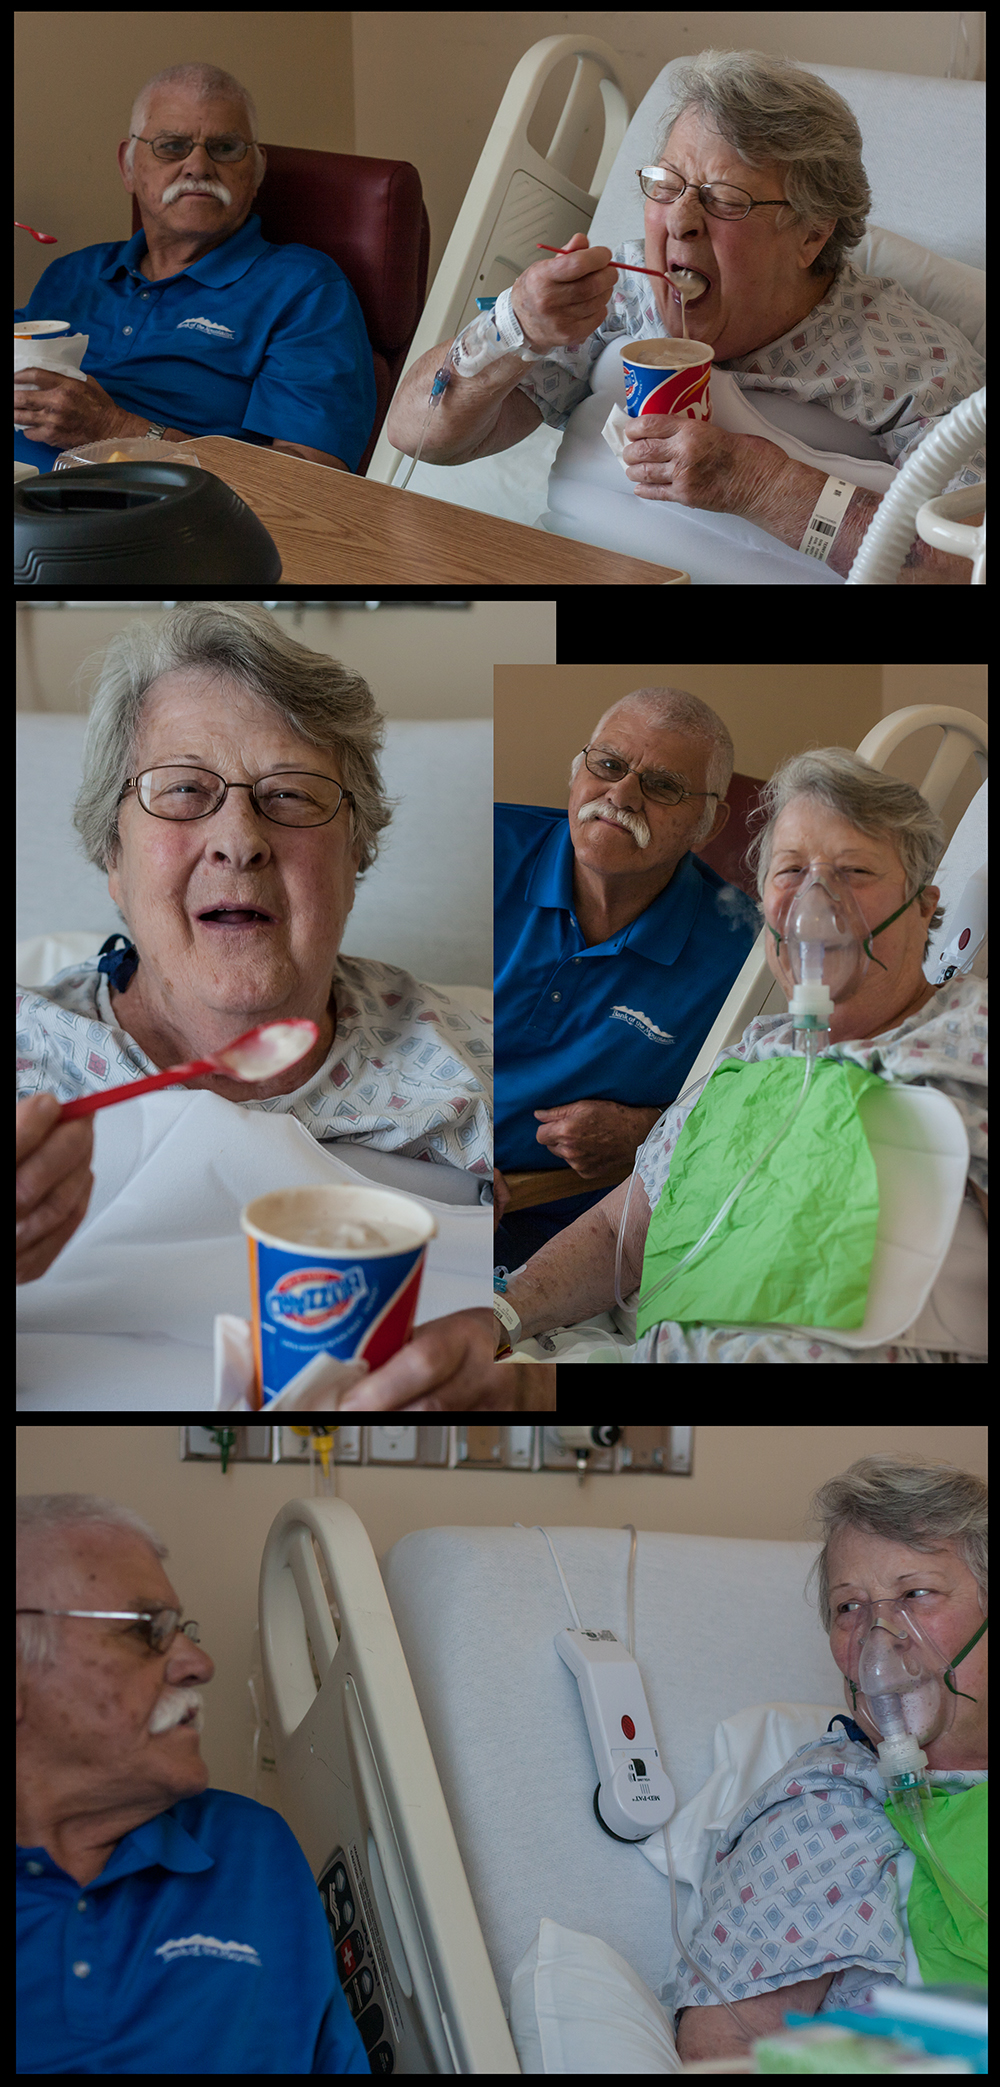 everything's better with a Blizzard